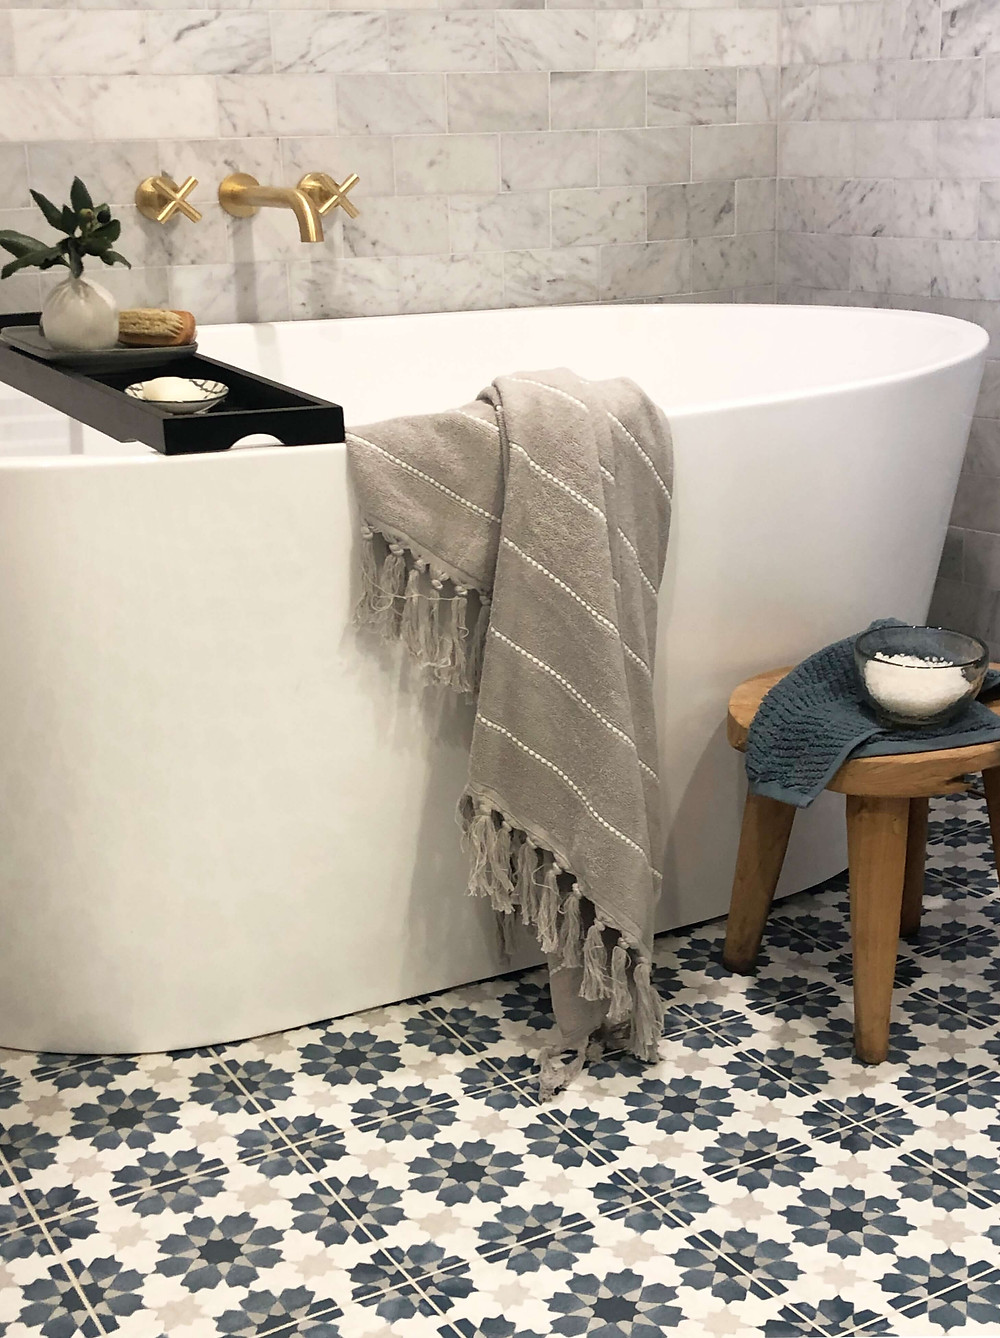 Carrara marble tile backsplash behind a white stand alone tub. Black bath tray with a flower vase and nail brush. A grey turkish towel draped over the side. Brass tapware mounted in the wall. Teal blue and grey flower Spanish tiles on the floor. A natural timber stool with a towel sitting just next to the tub.